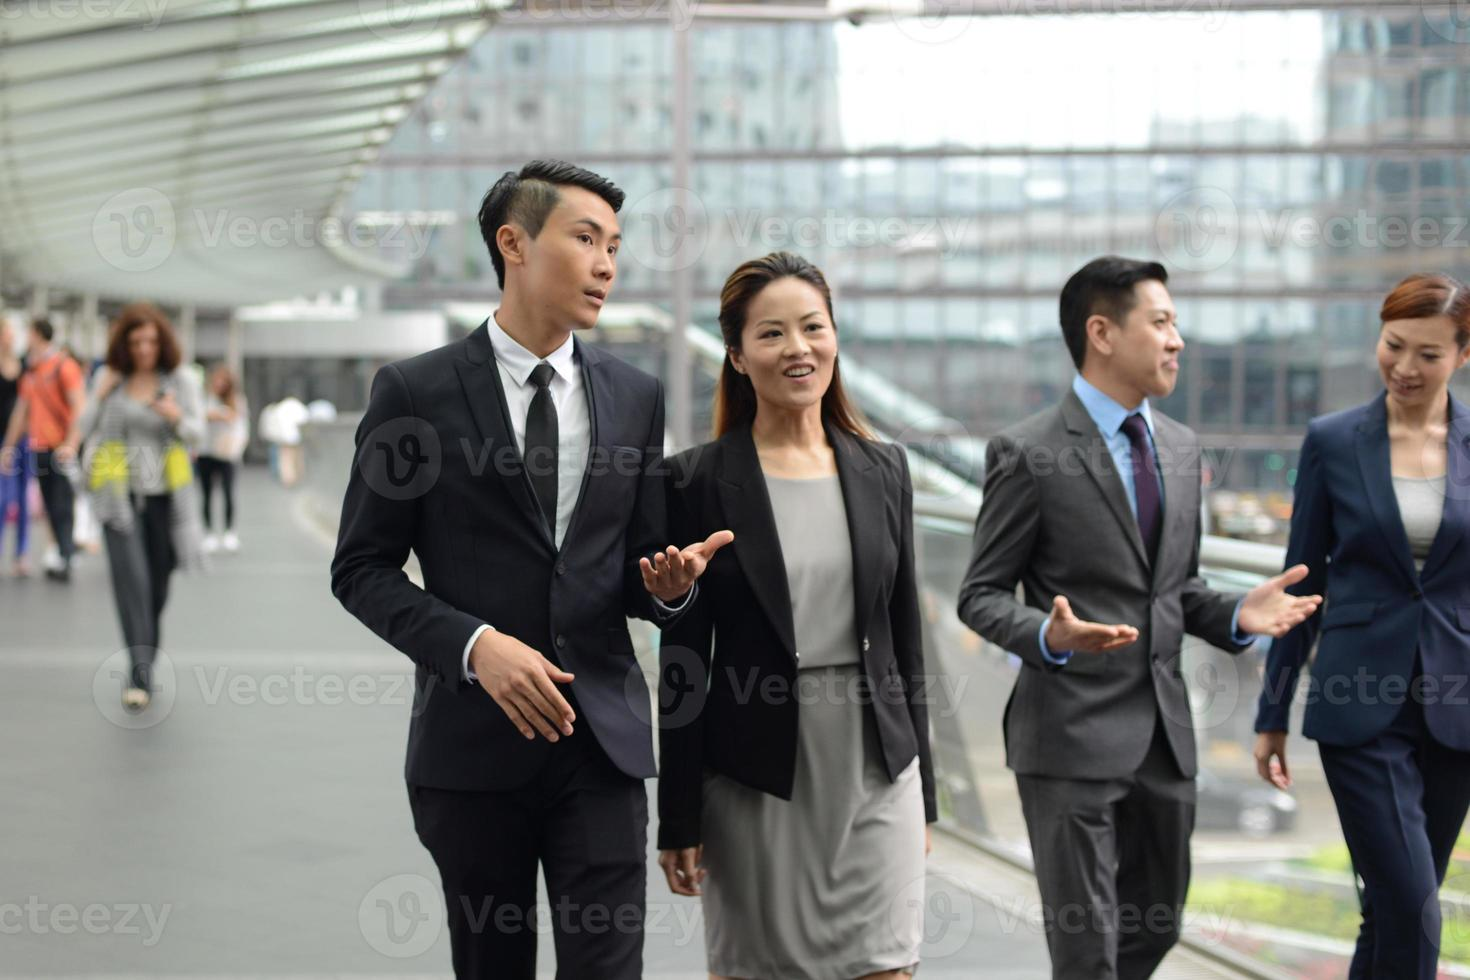 Business People Walking on the Street photo